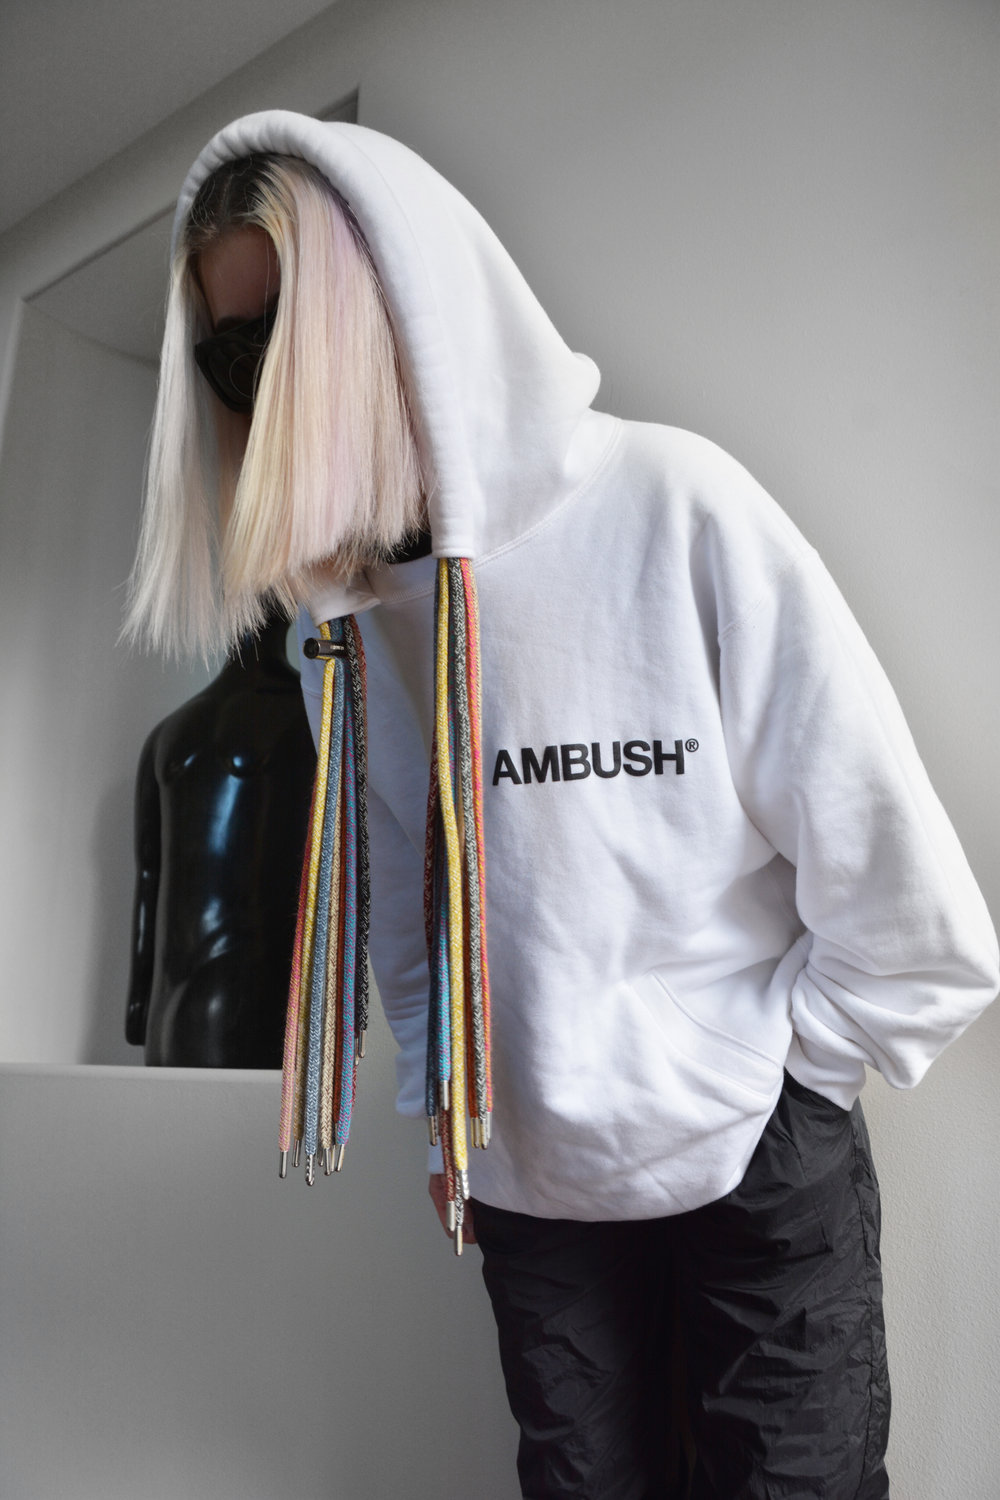 Brand Spotlight: - Our very own STYLEGUISE twin wears Ambush. This Tokyo based jewelry line turned unisex clothing brand debuted their first collection on the Spring/Summer 2019 runway in Paris.Follow: @ambush_officialShop: ambushdesign.com